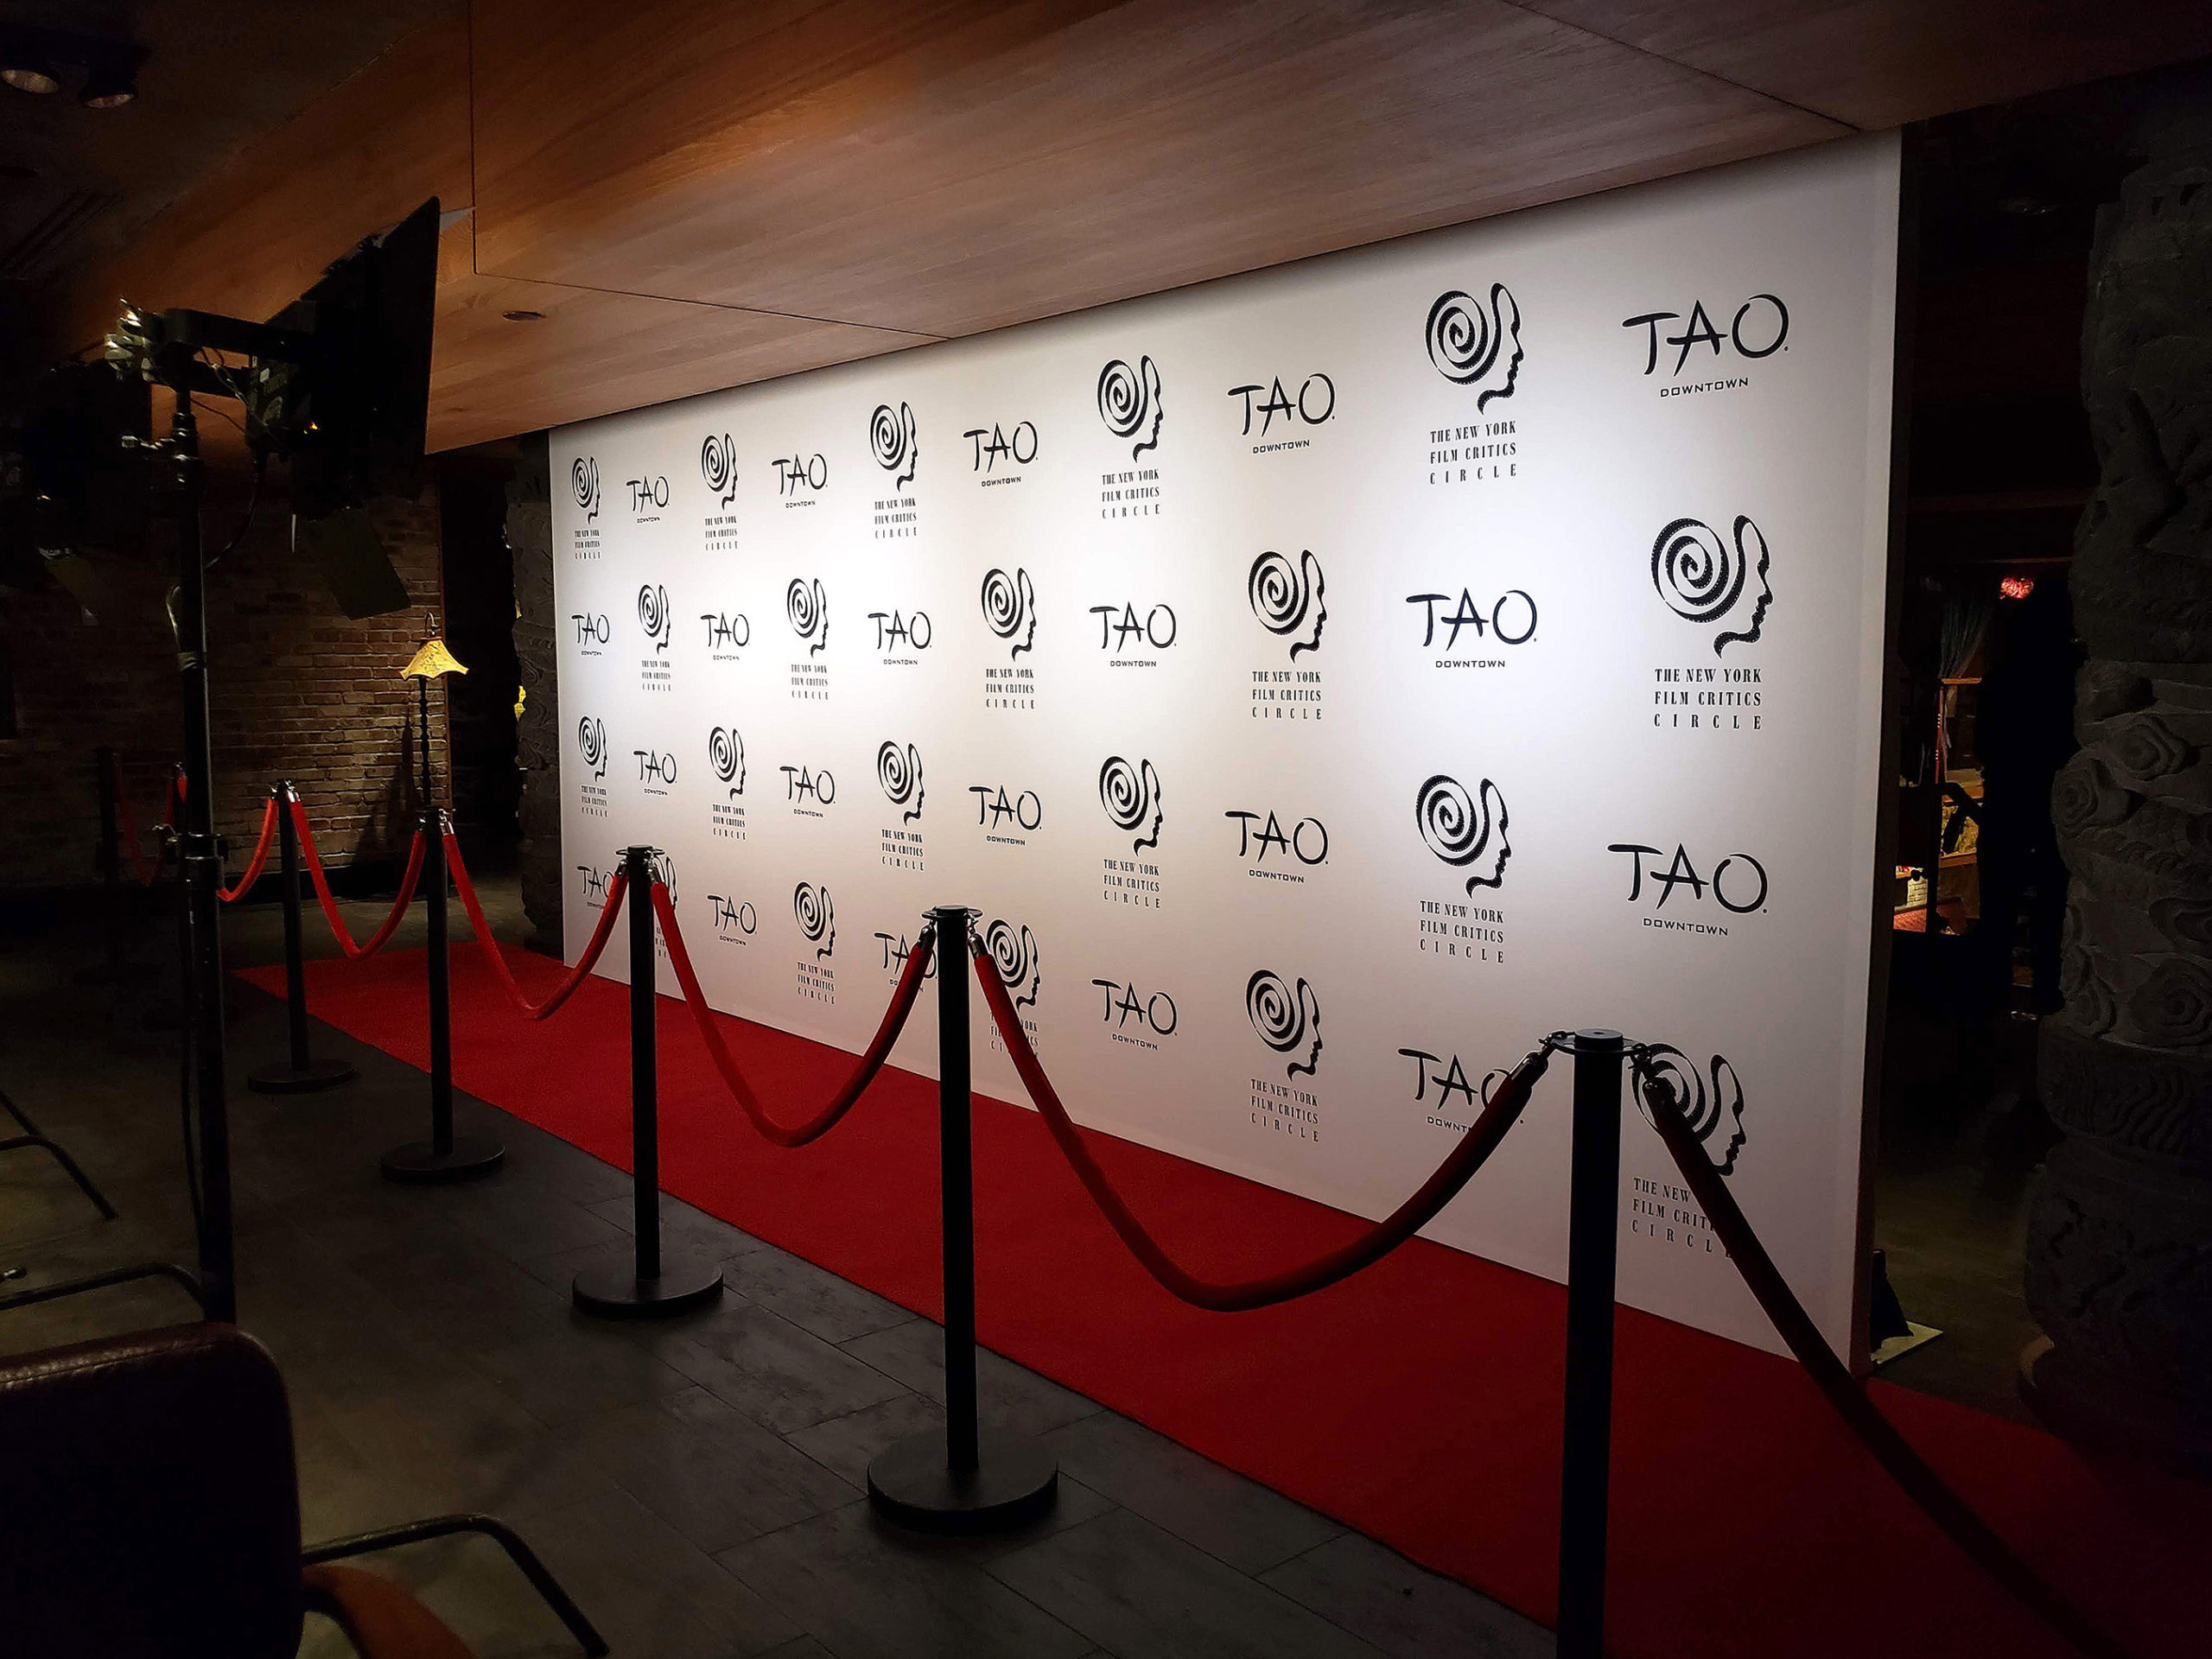 new york film critics circle awards red carpet backdrop production company